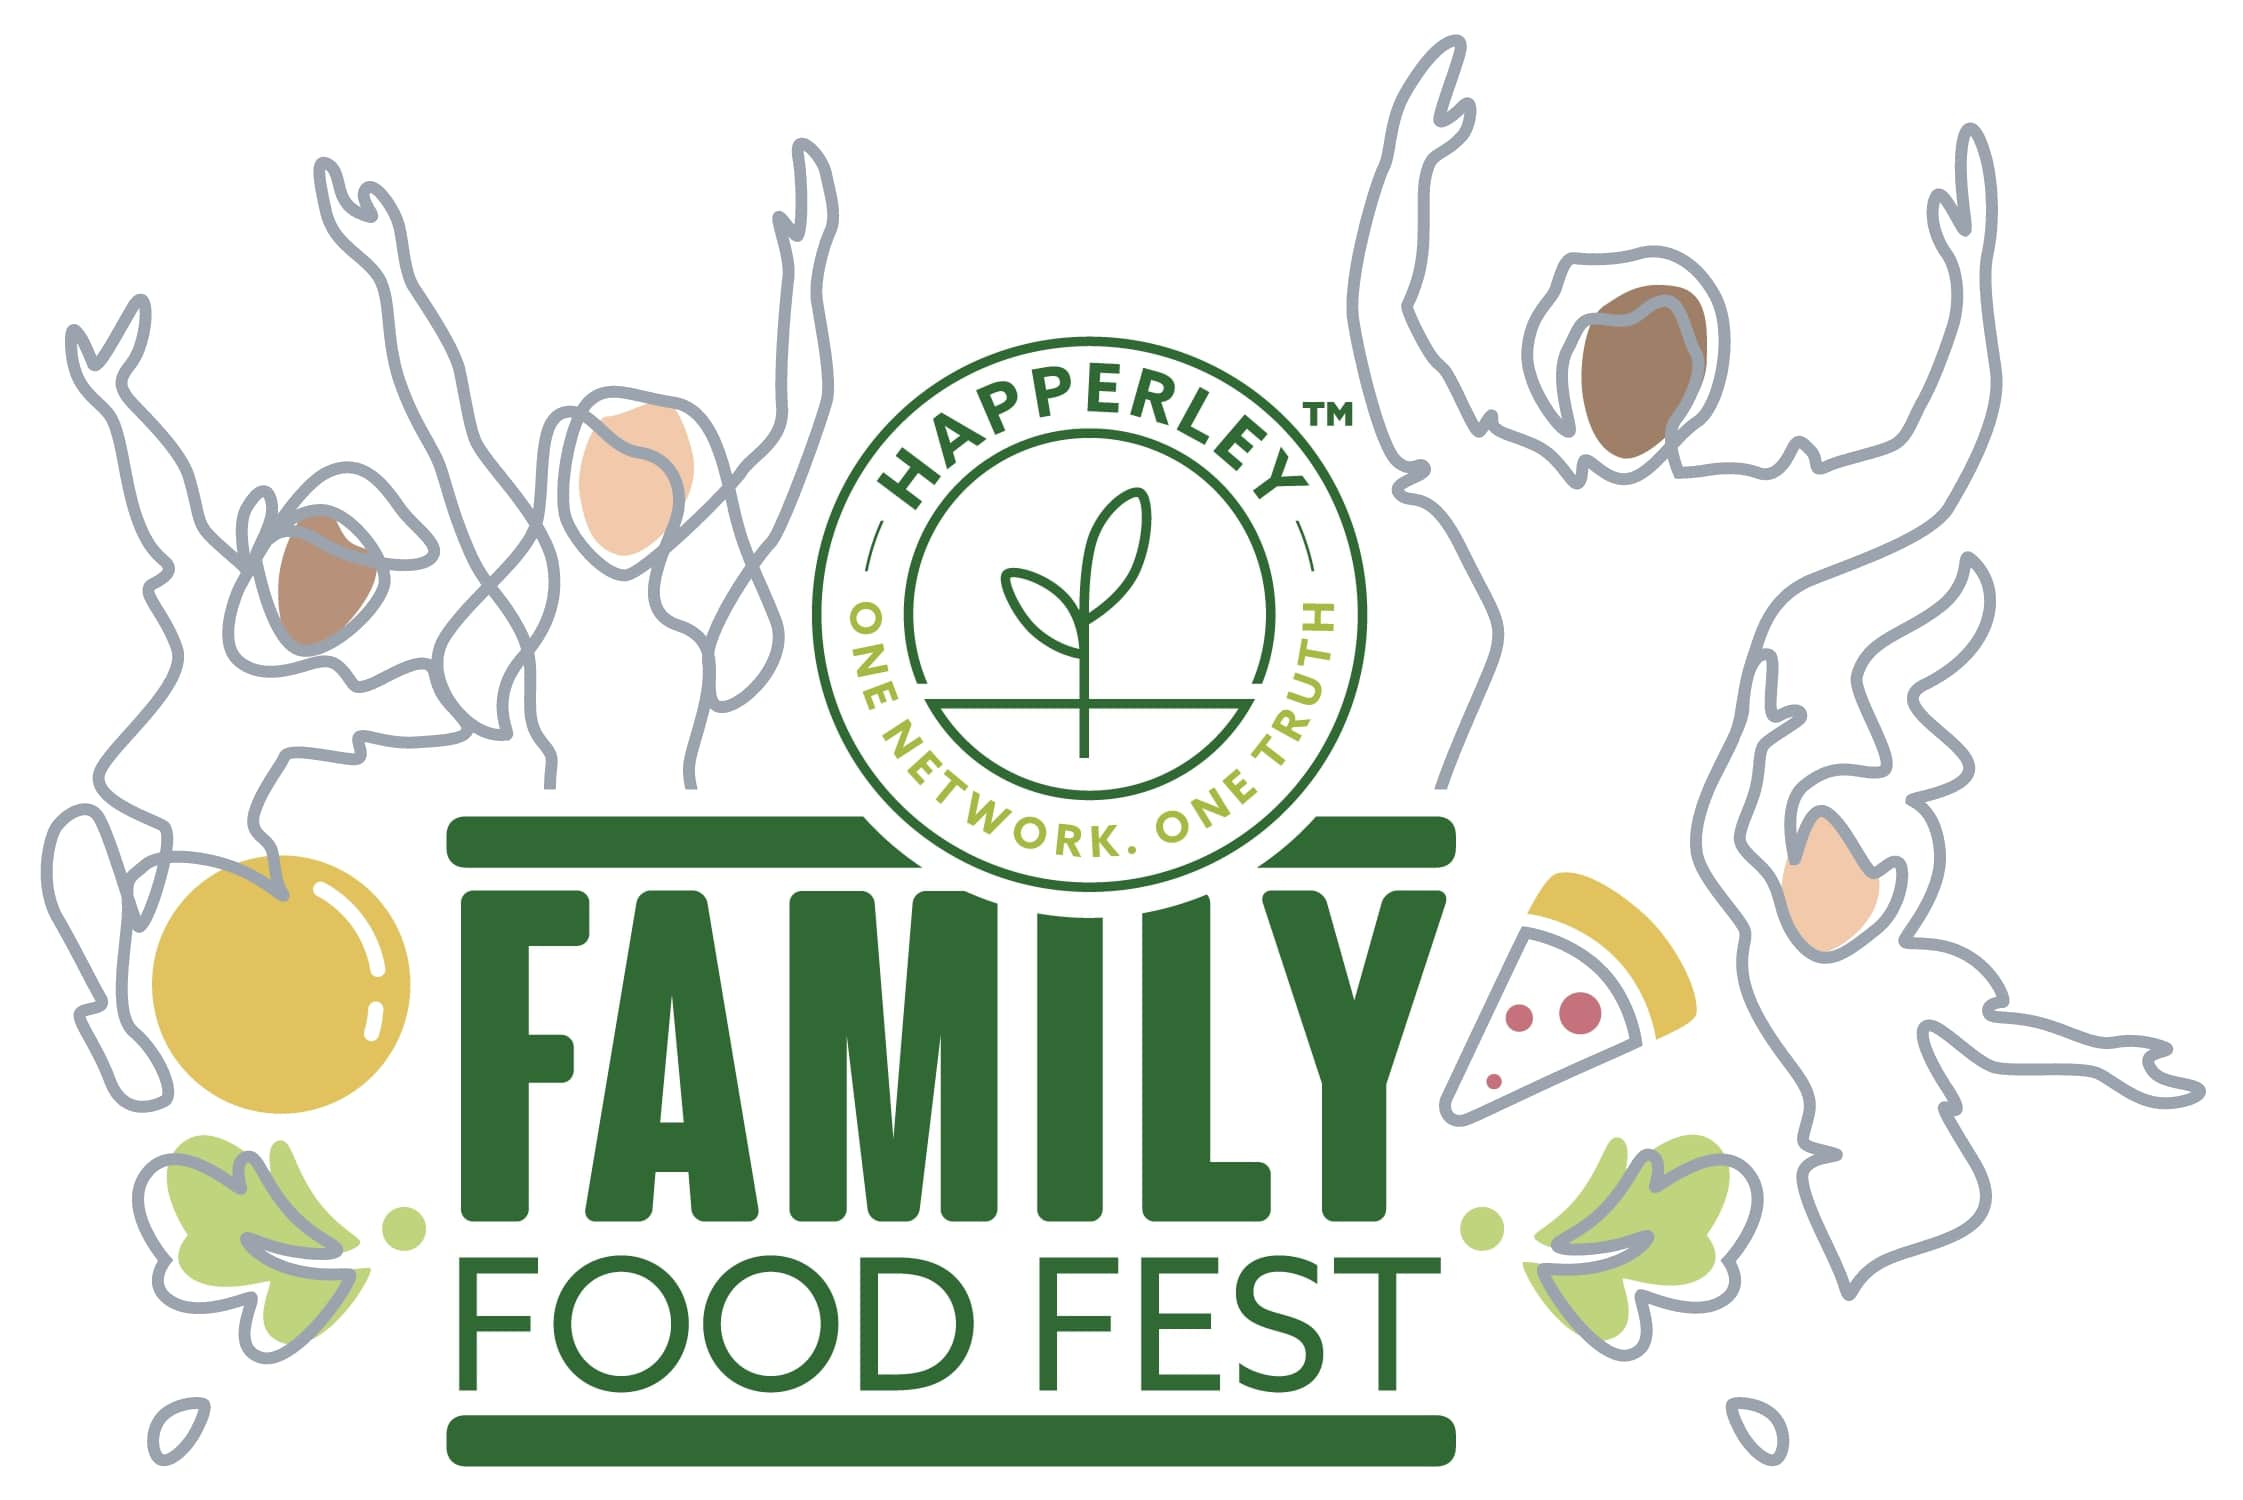 Happerley Family Food Fest